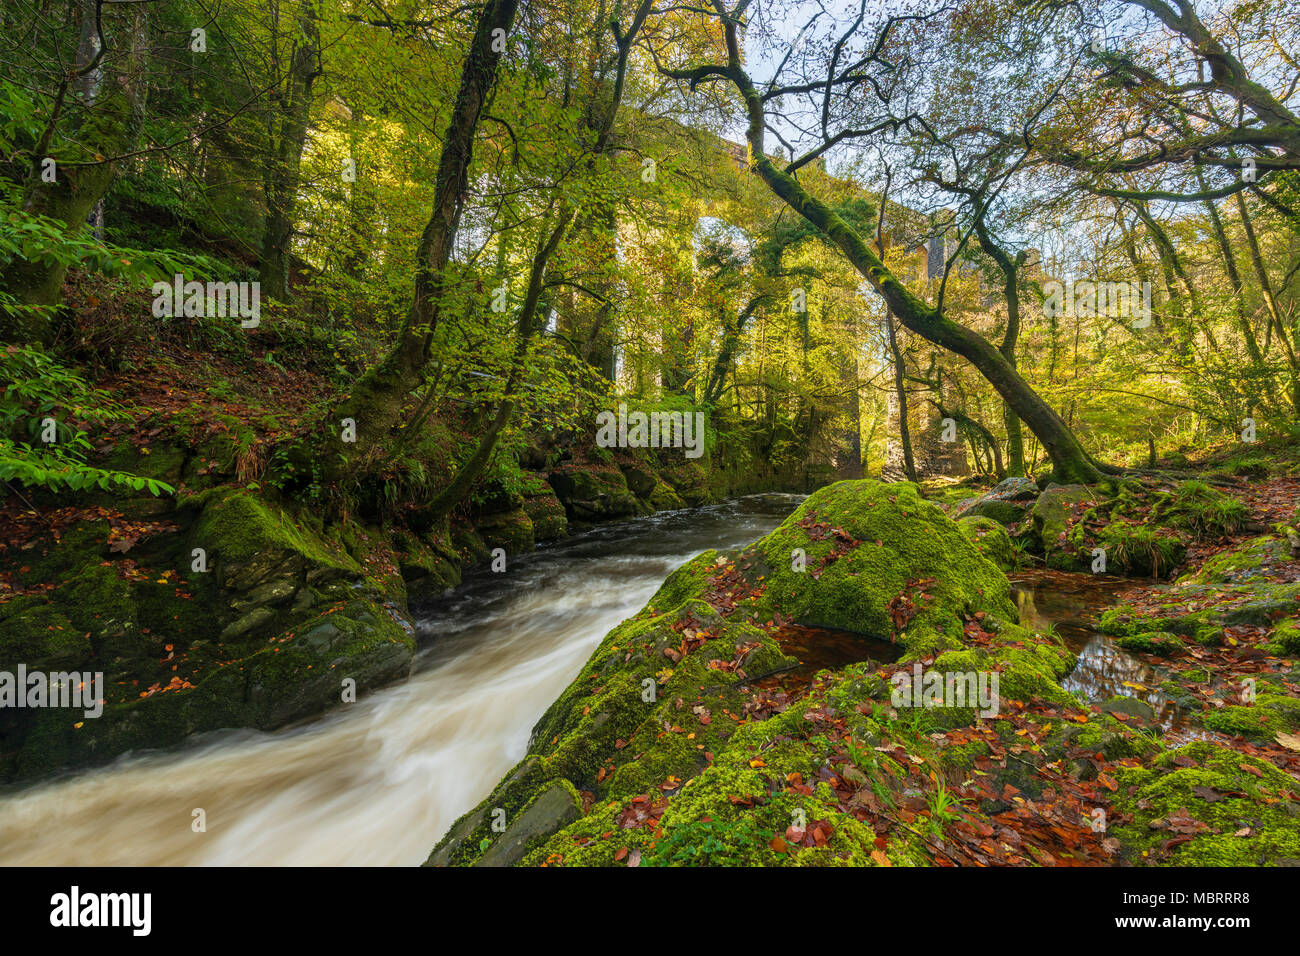 The River Erme in woodland on the edge of the Dartmoor National Park with the Ivybridge viaduct beyond. Devon, England. - Stock Image